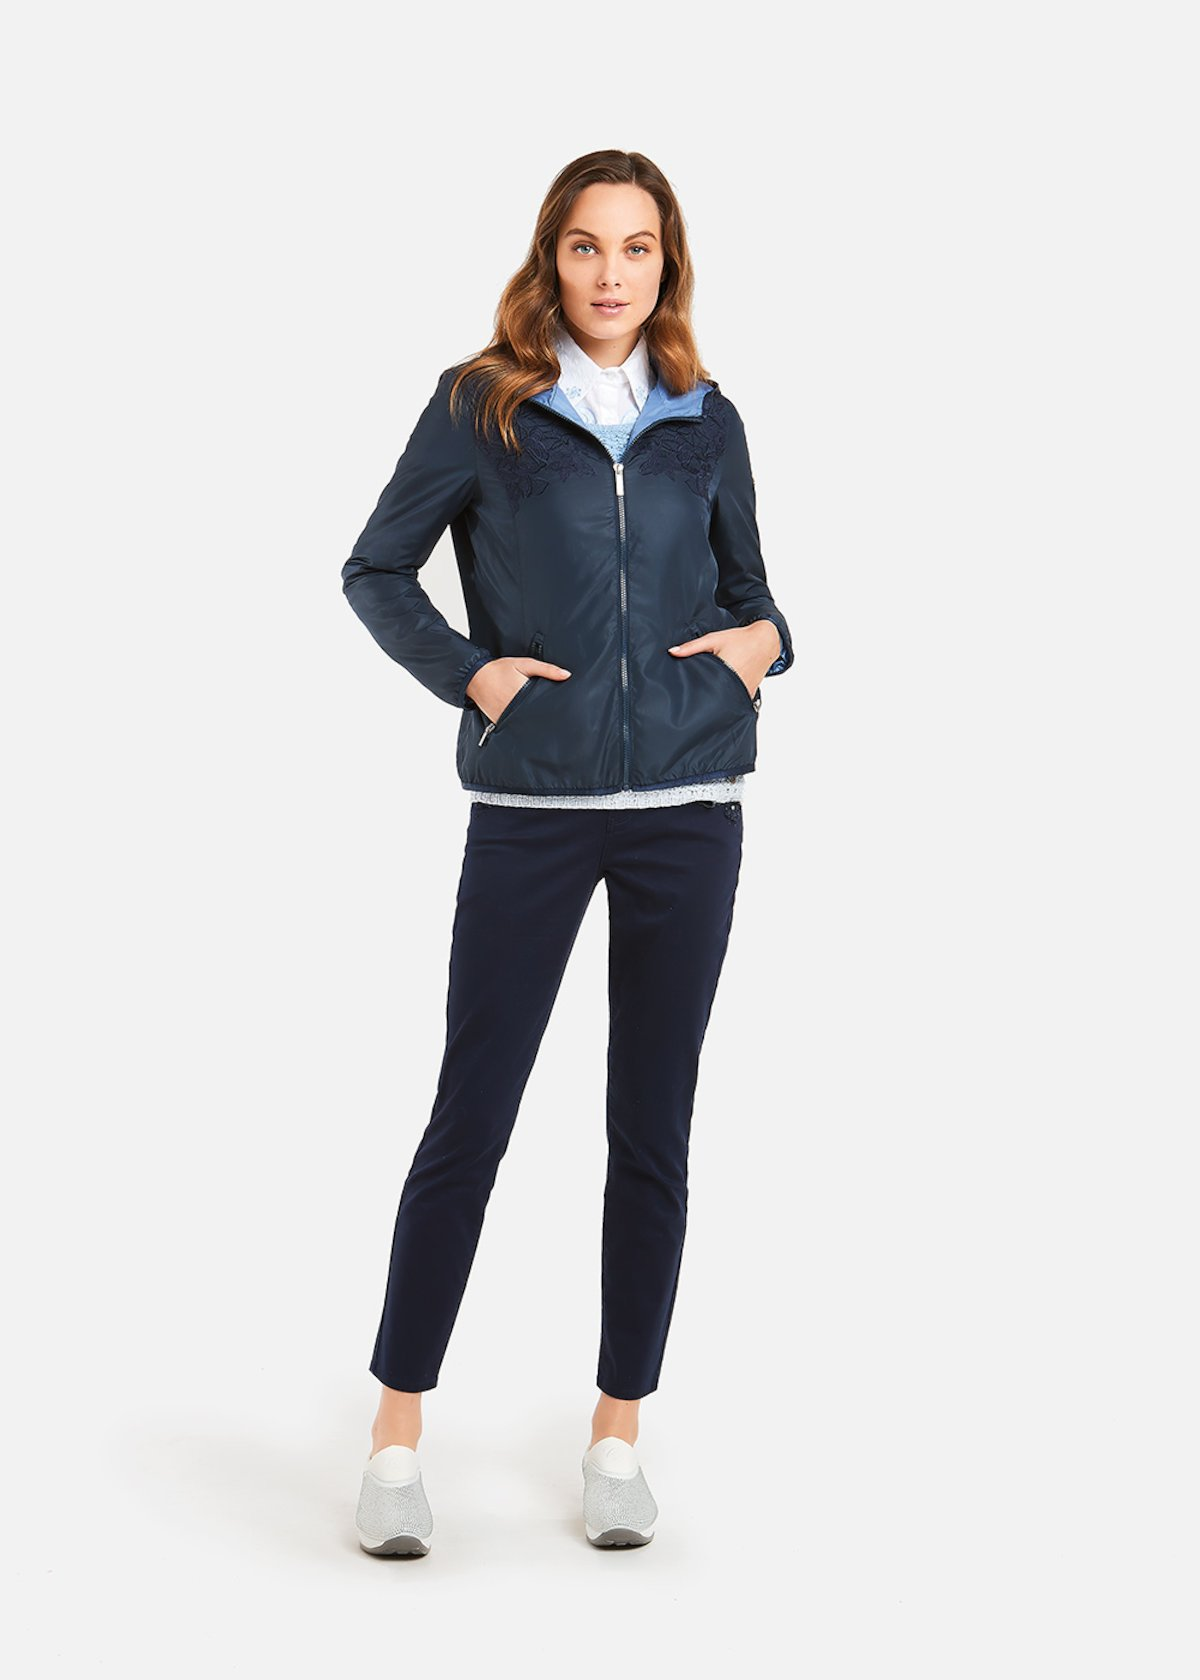 Garis jacket with floral embroidery - Medium Blue